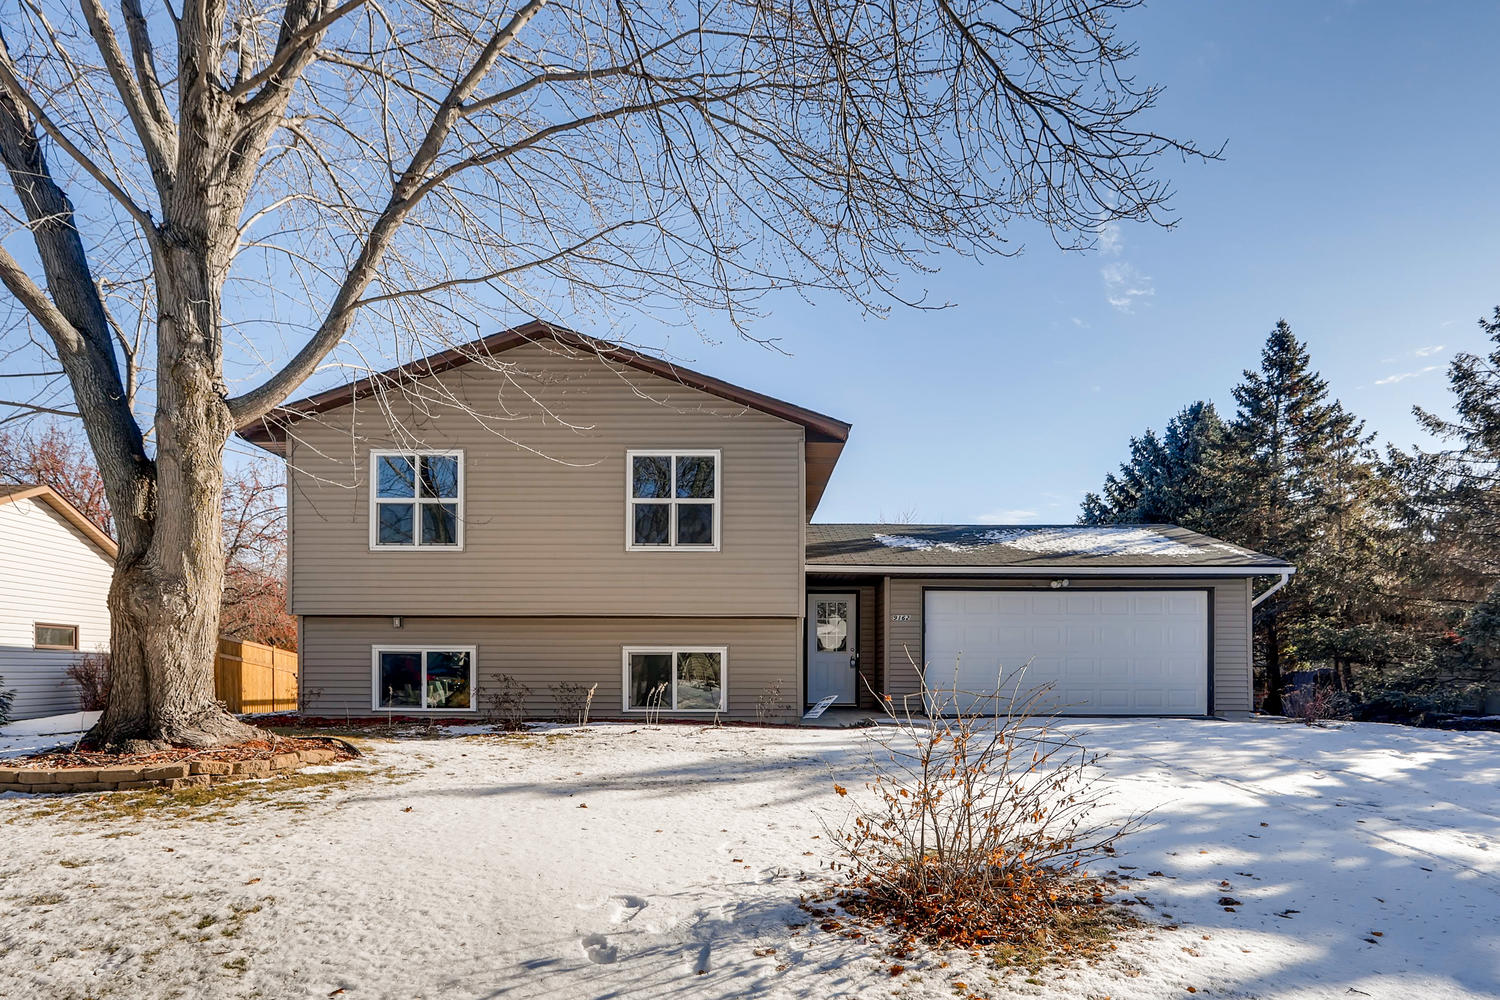 Photo of 9162 Lanewood Ln N, Maple Grove, MN, 55369